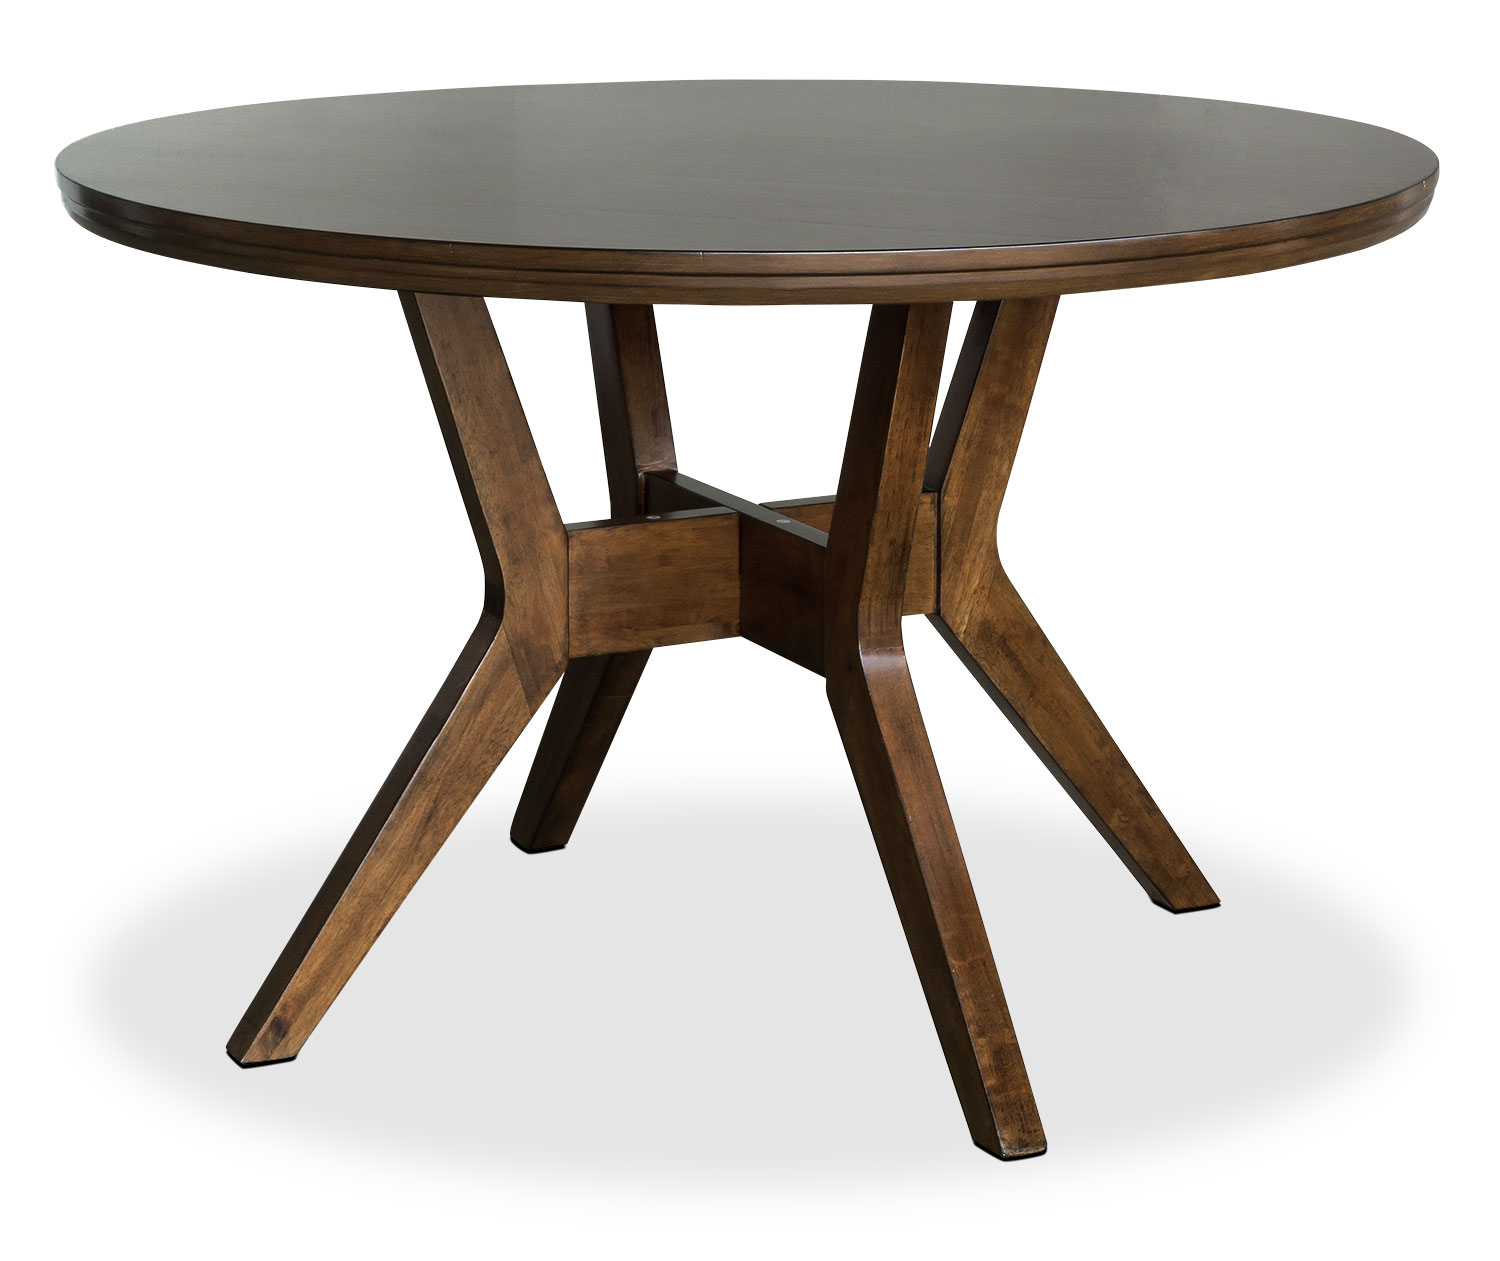 chelsea round dining table the brick. Black Bedroom Furniture Sets. Home Design Ideas